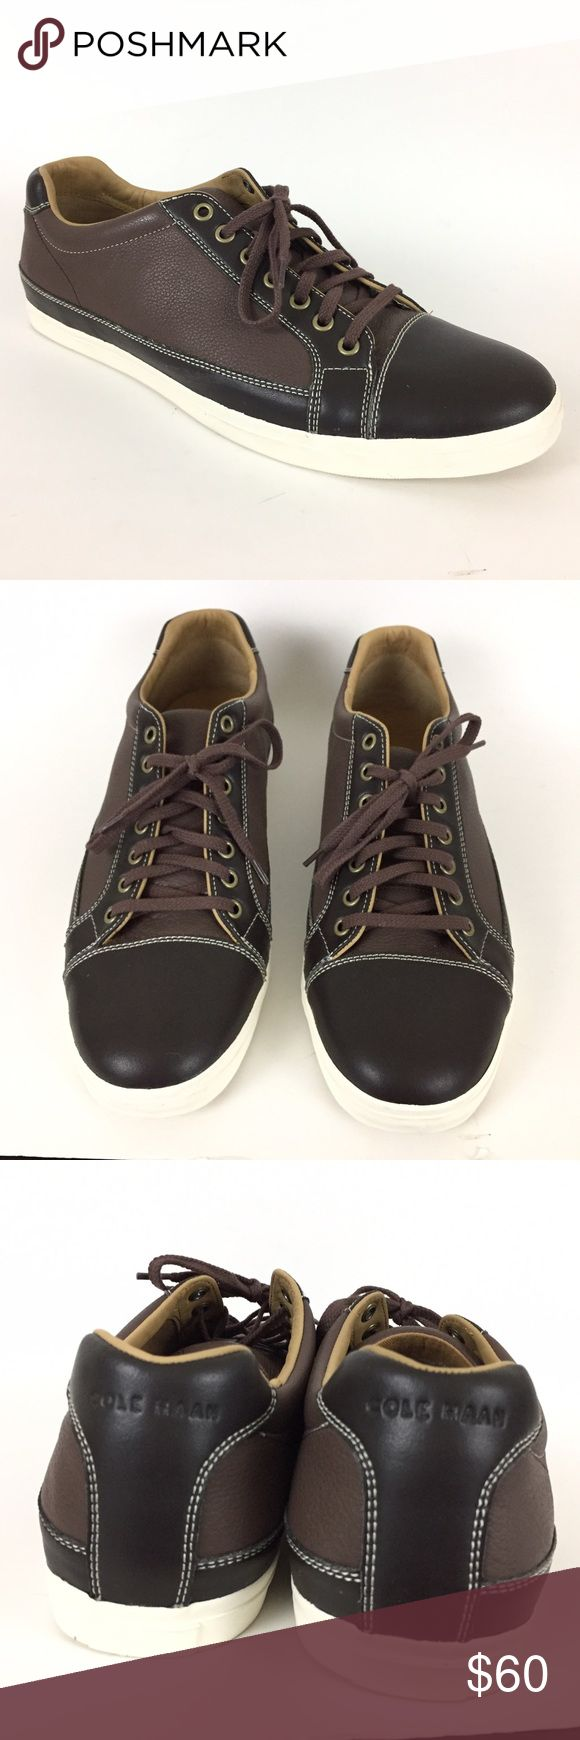 Men's Cole Haan Jax Brown Leather Sneakers